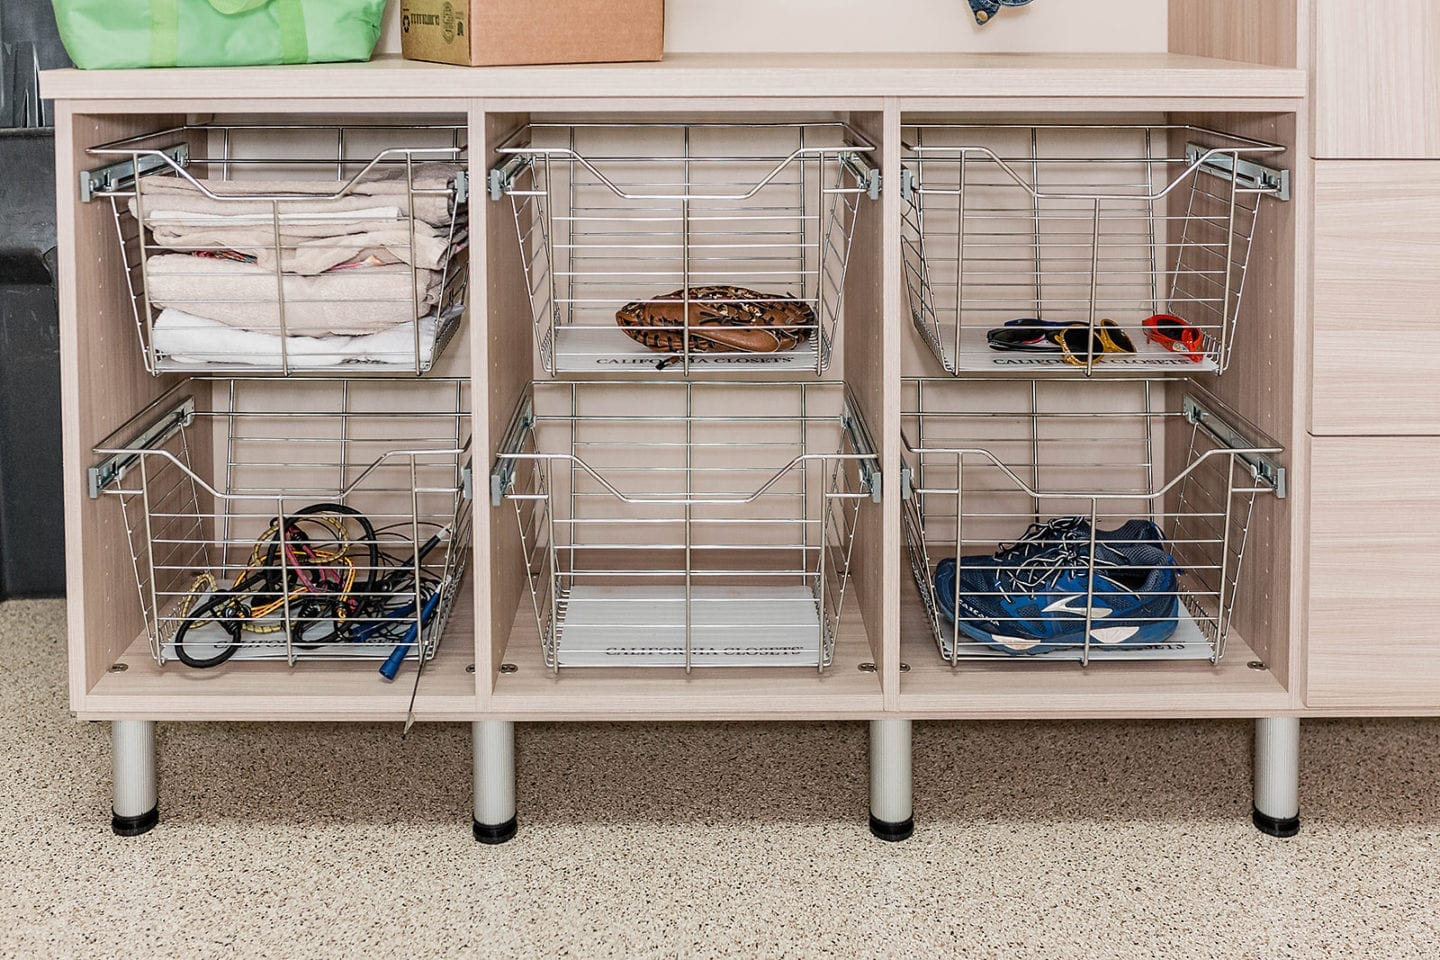 Garage and Attic Organization - baskets to store gym equipment and junk in your garage. Creative ways to keep things organized!